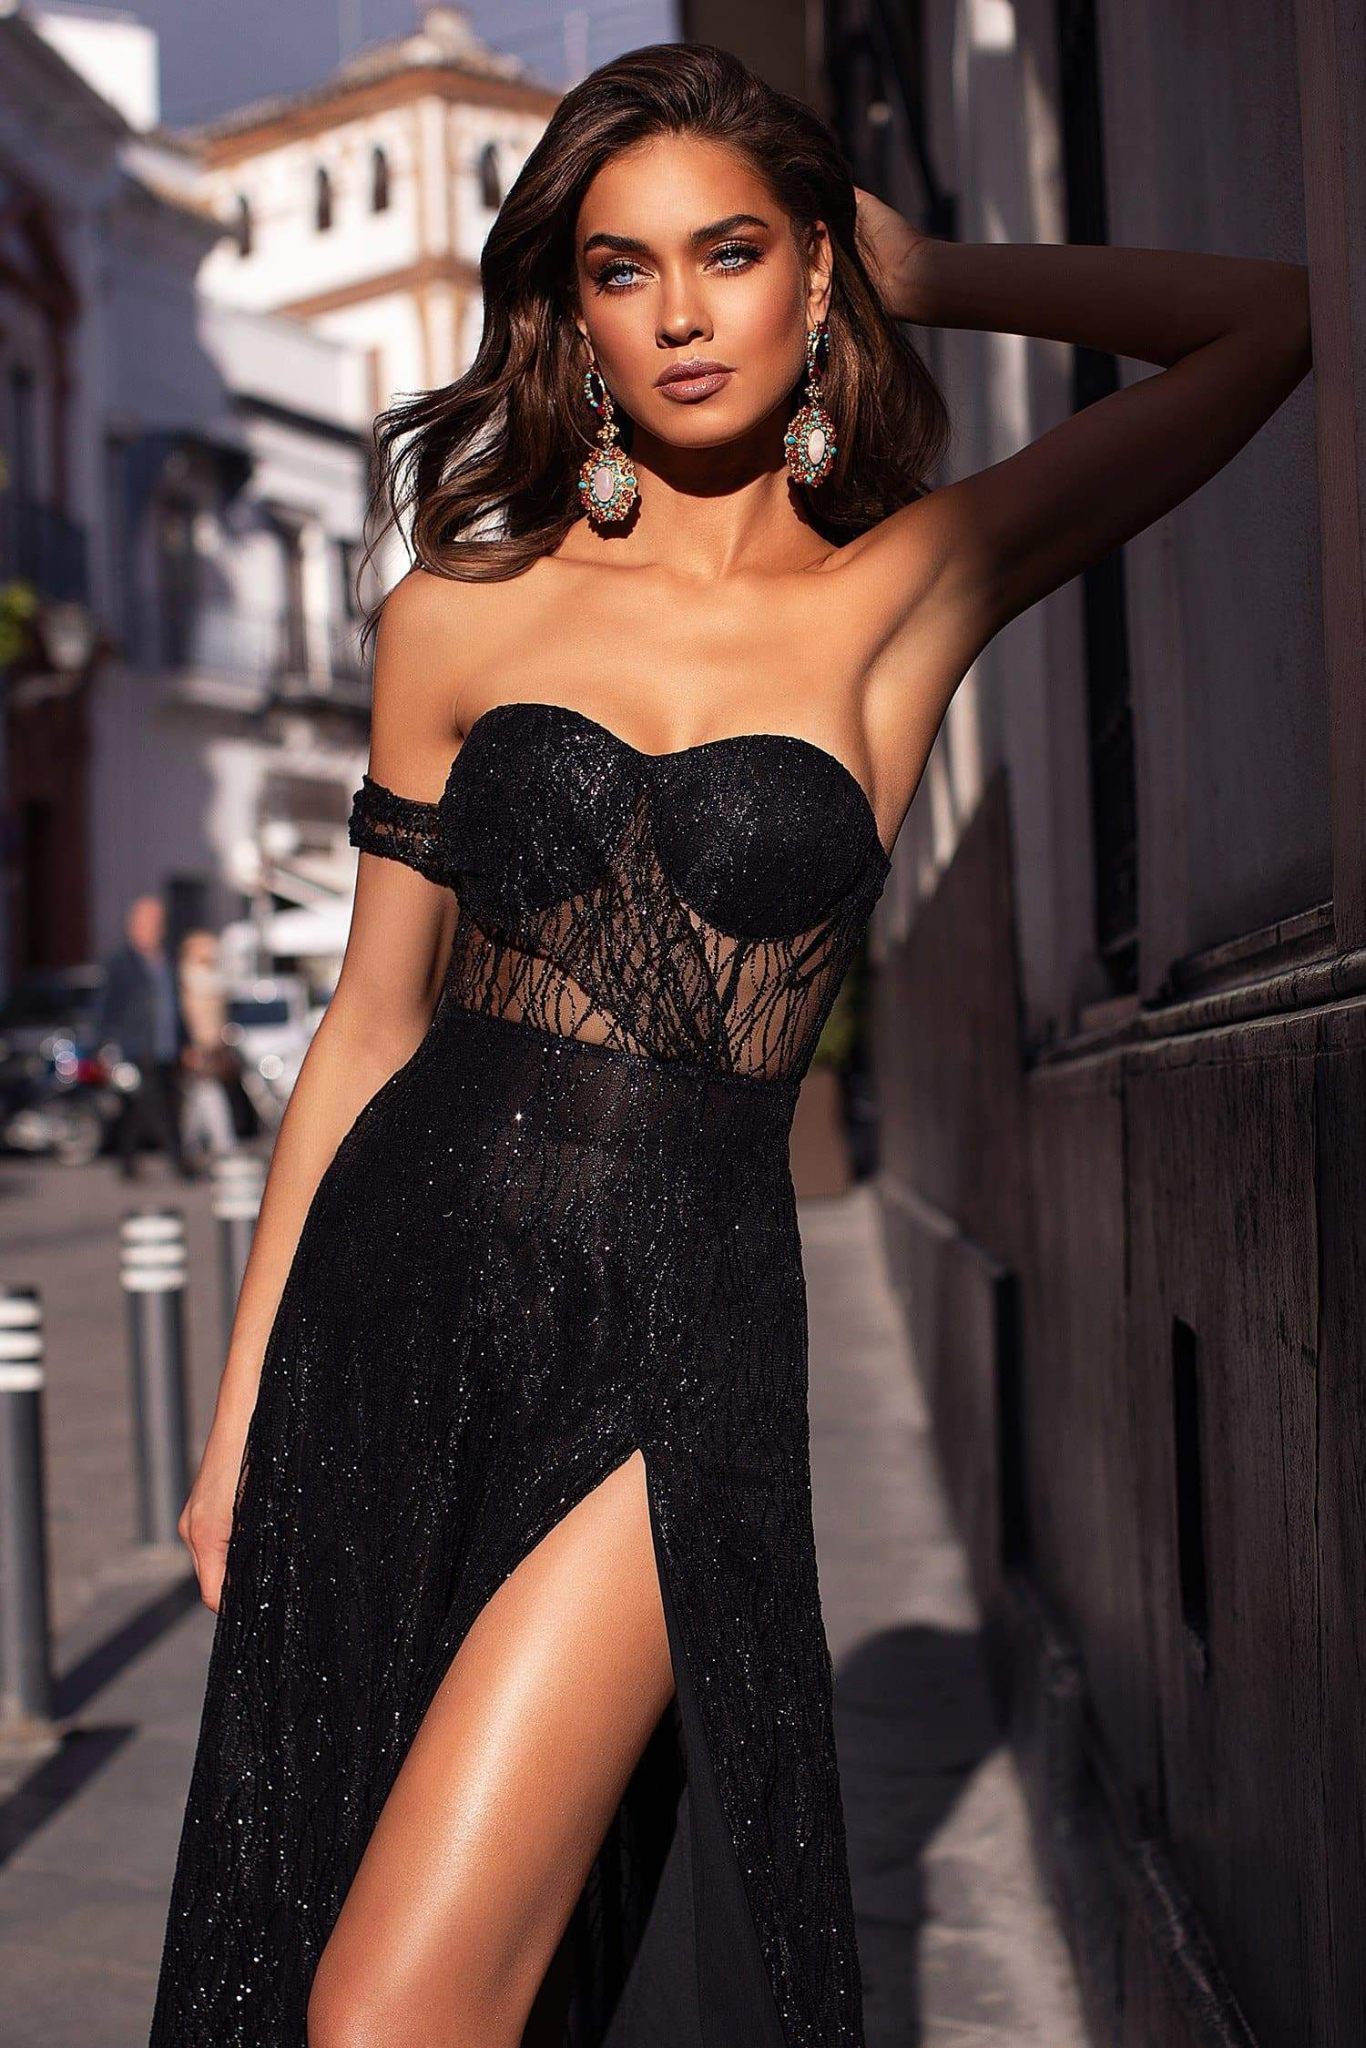 Young woman in a gorgeous black evening dress for a black-tie event